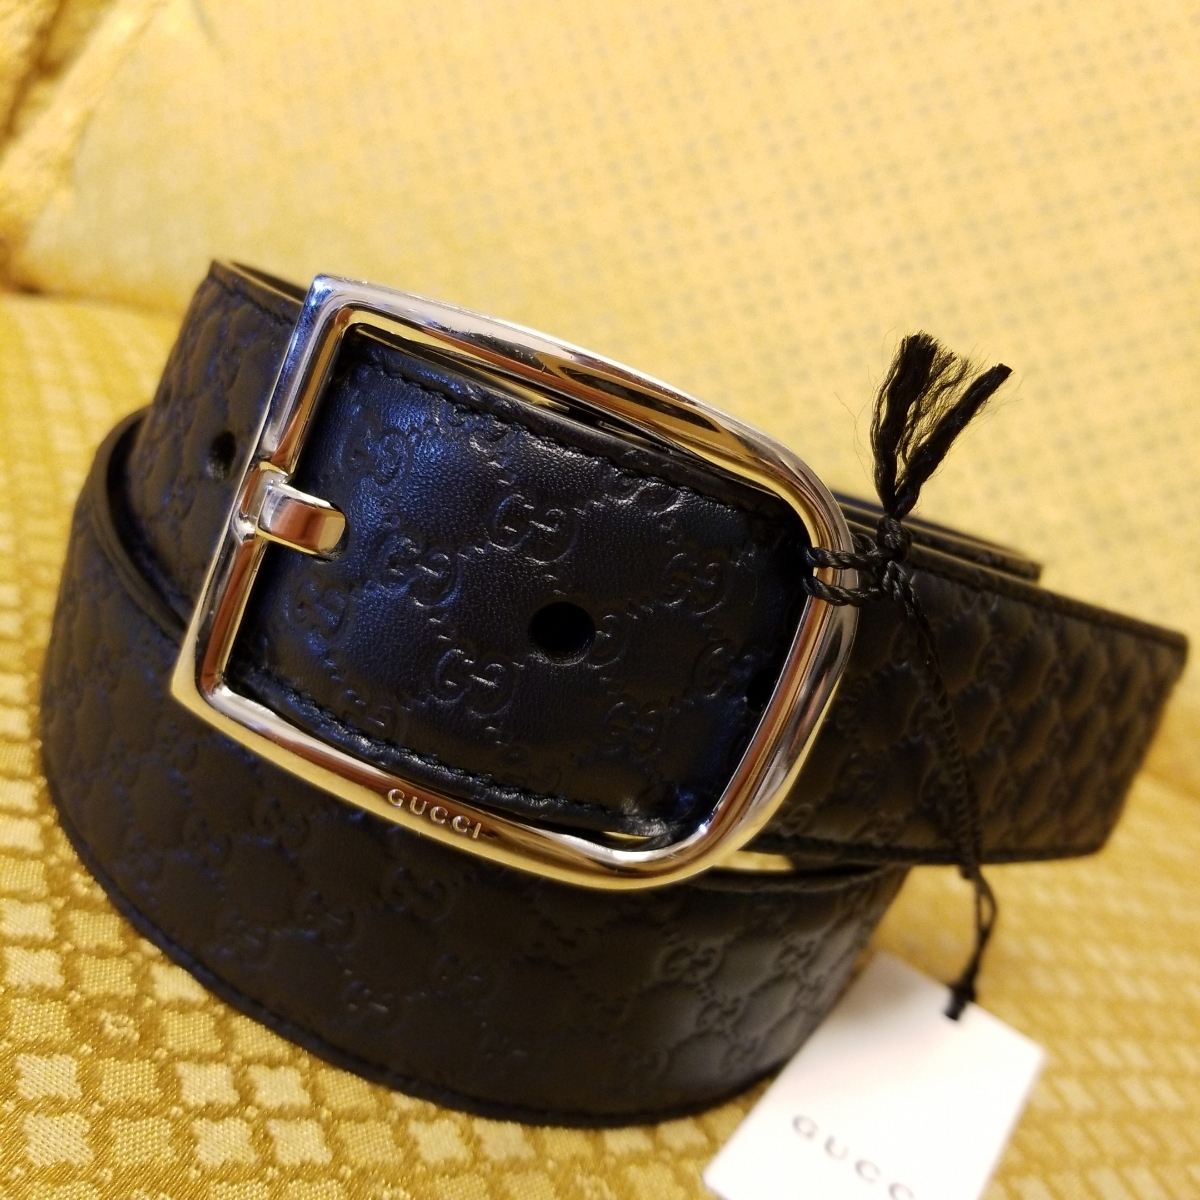 eec5c77f0388 tag equipped GUCCI Gucci men's GG type pushed .signachua- leather belt black  85cm 2019 year buy reference price 6 ten thousand